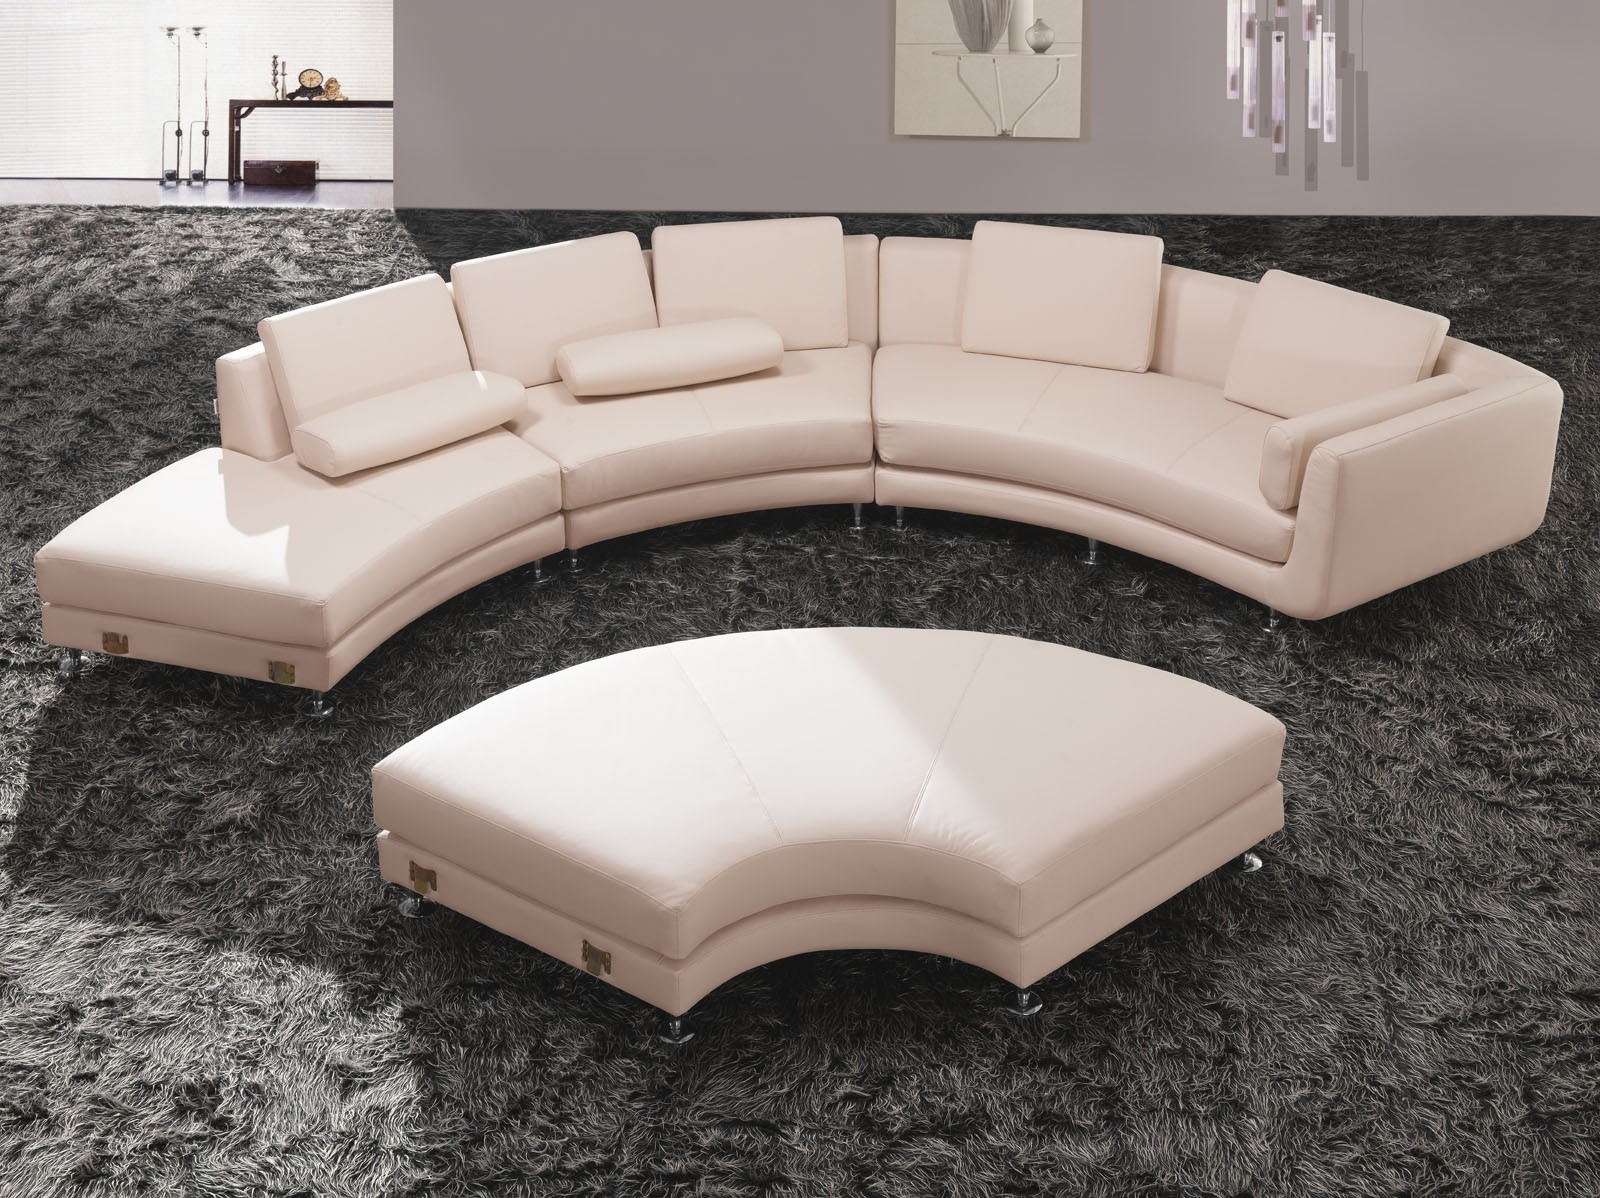 Sofa : Glamorous Round Sectional Sofa Bed Curved Leather Tufted Pertaining To Most Up To Date Round Sofas (View 10 of 20)